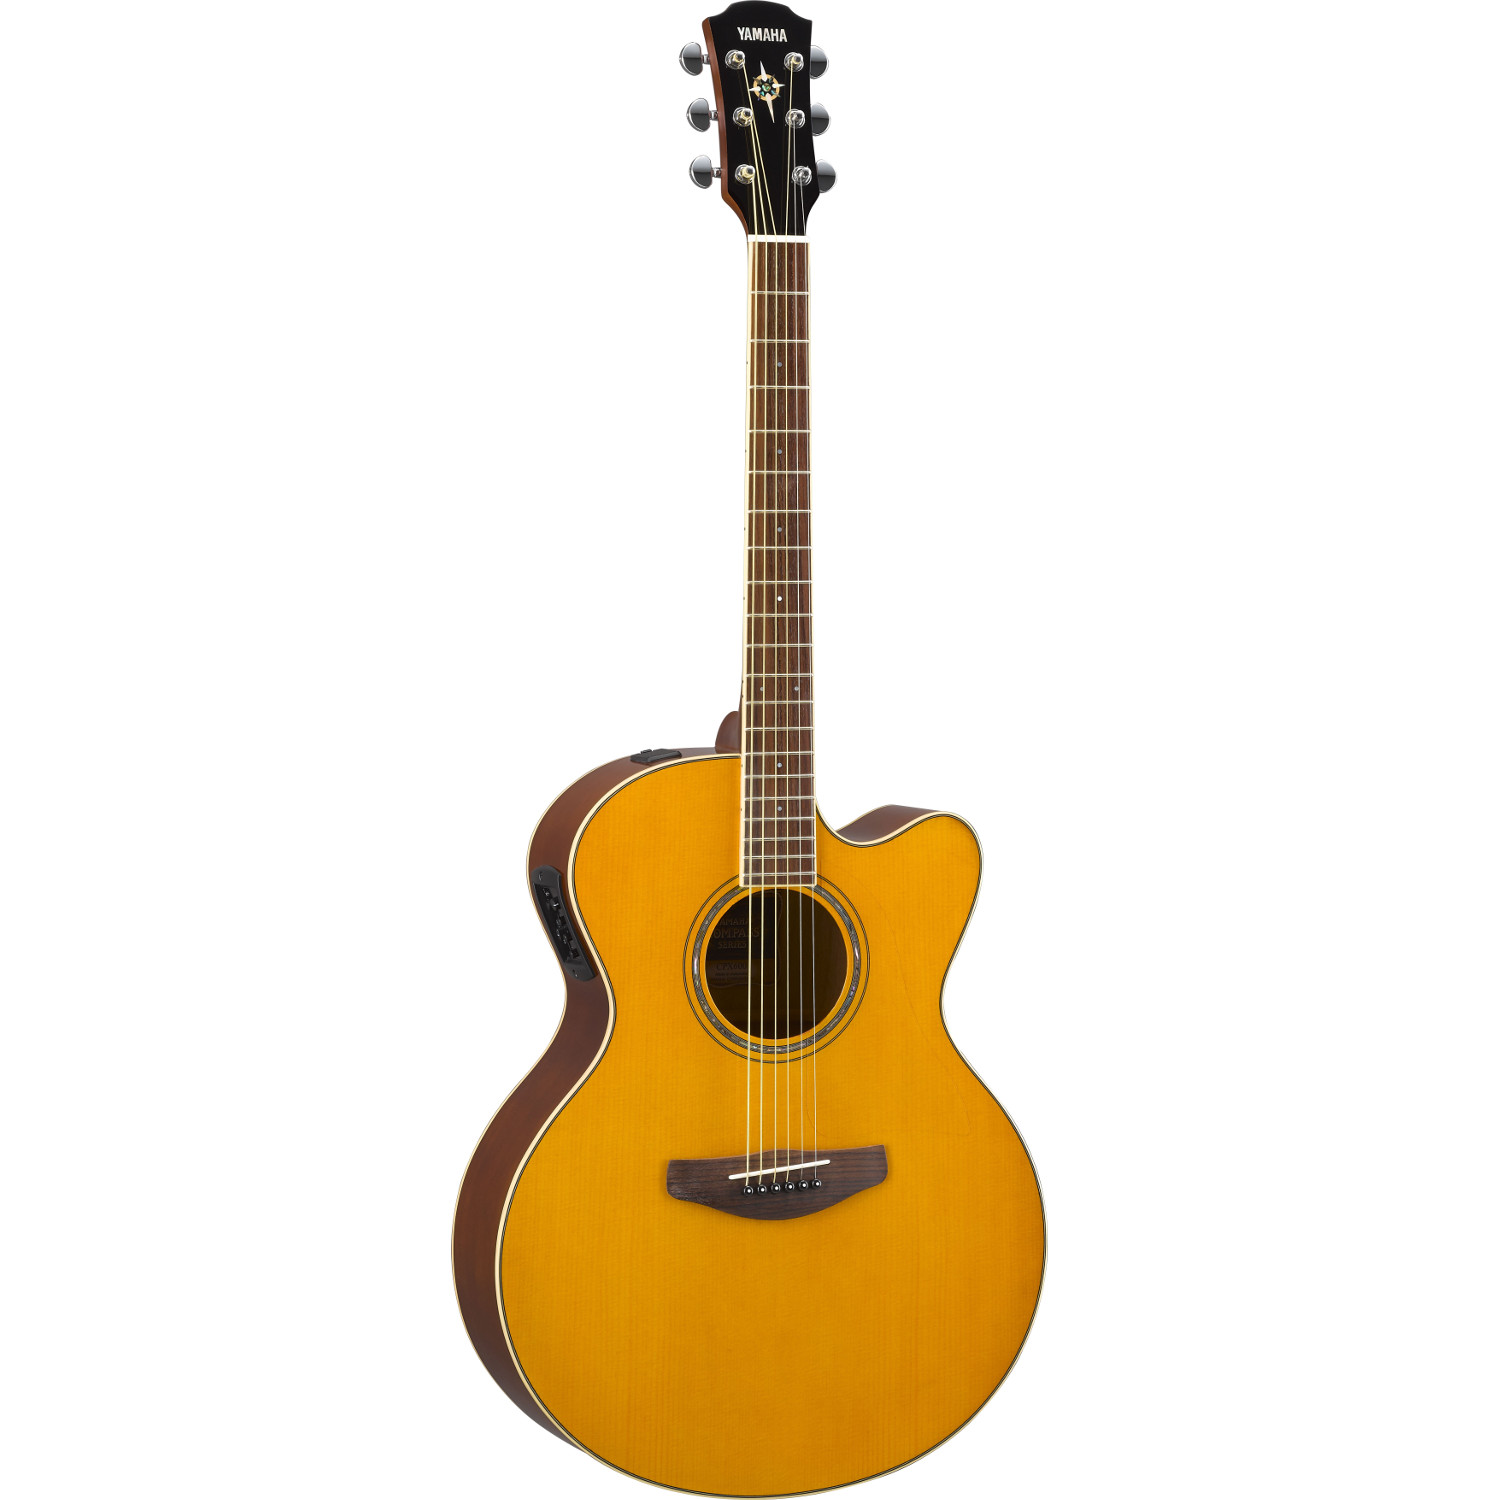 Yamaha CPX600 Vintage Tint electro acoustic guitar